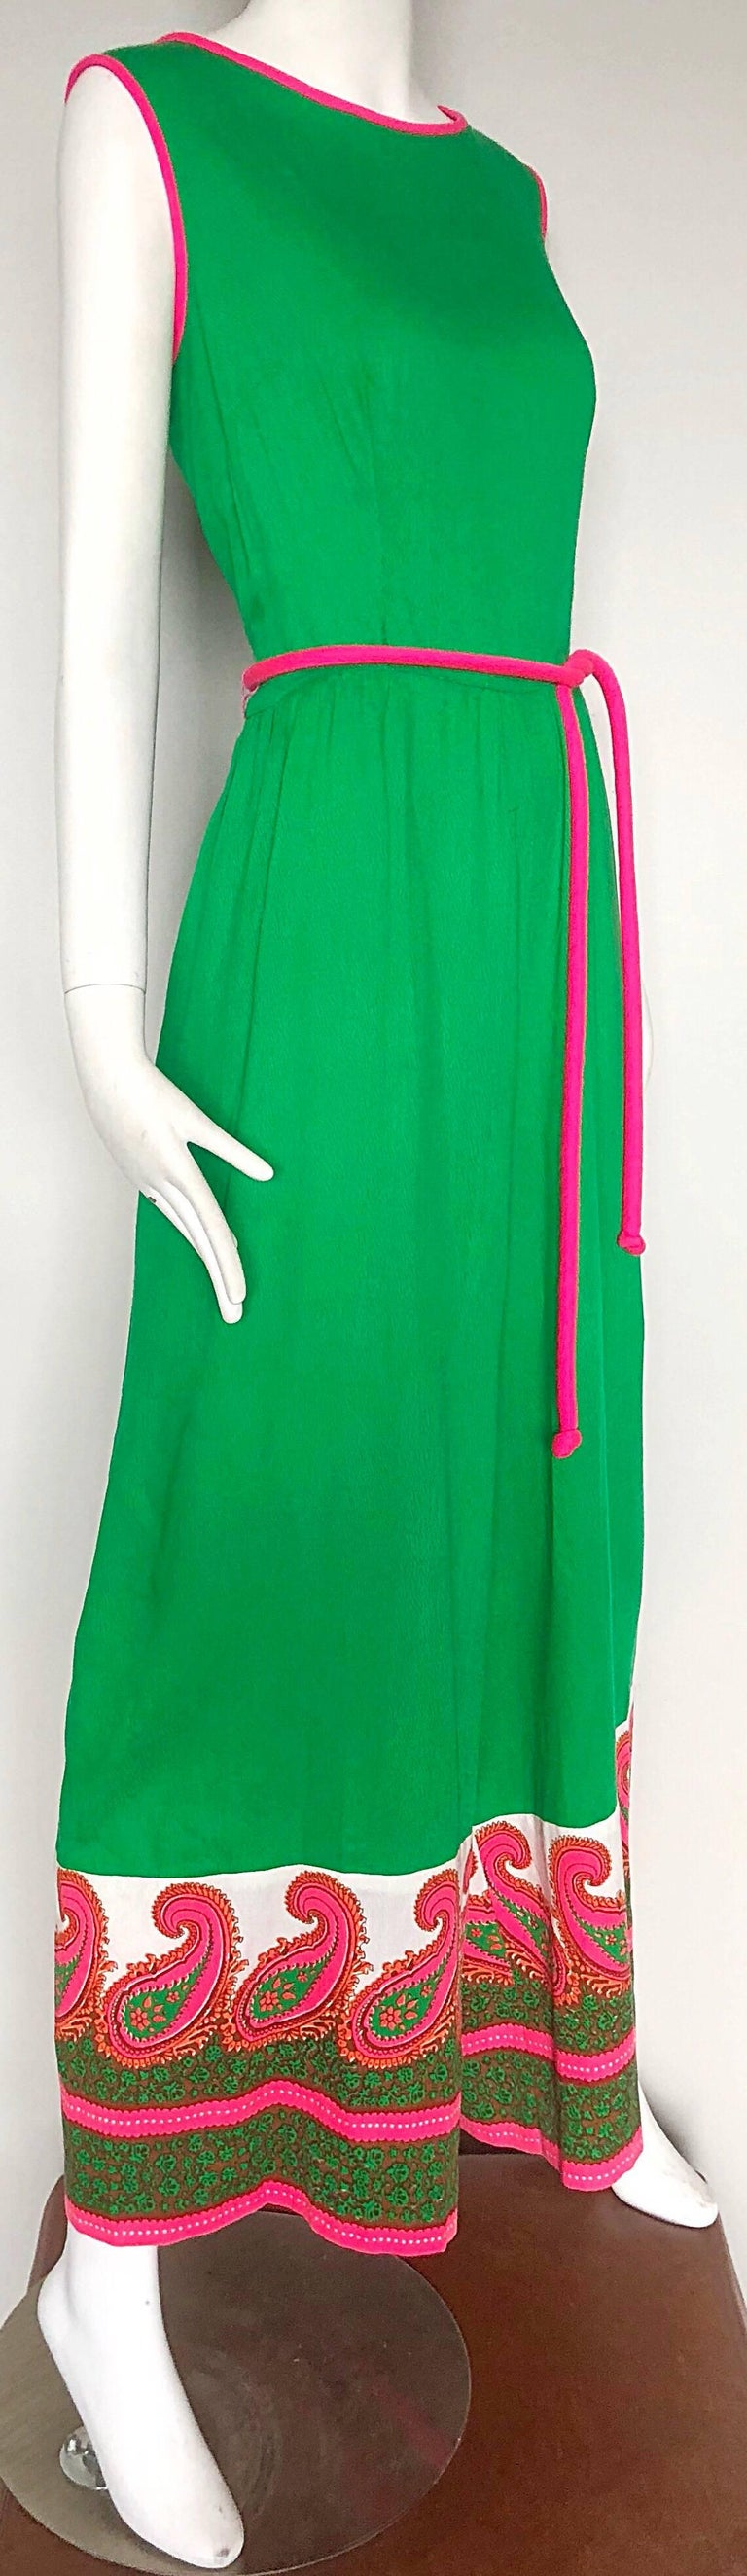 Alfred Shaheen 1960s Large Size Kelly Green + Pink Vintage 60s Palazzo Jumpsuit For Sale 3